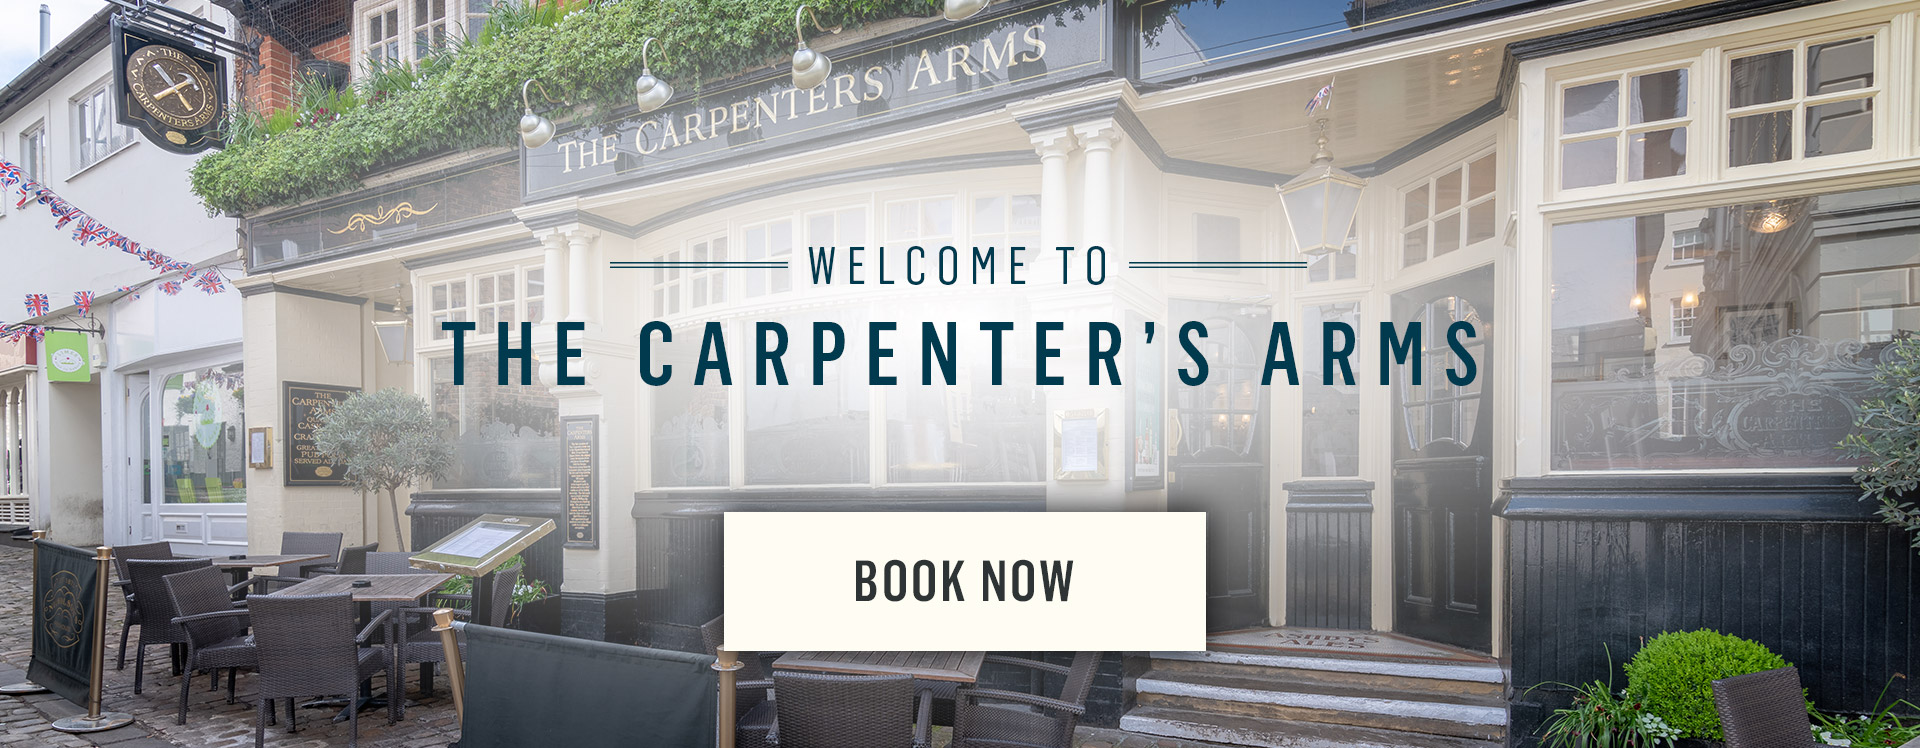 Welcome to The Carpenter's Arms - Book Now